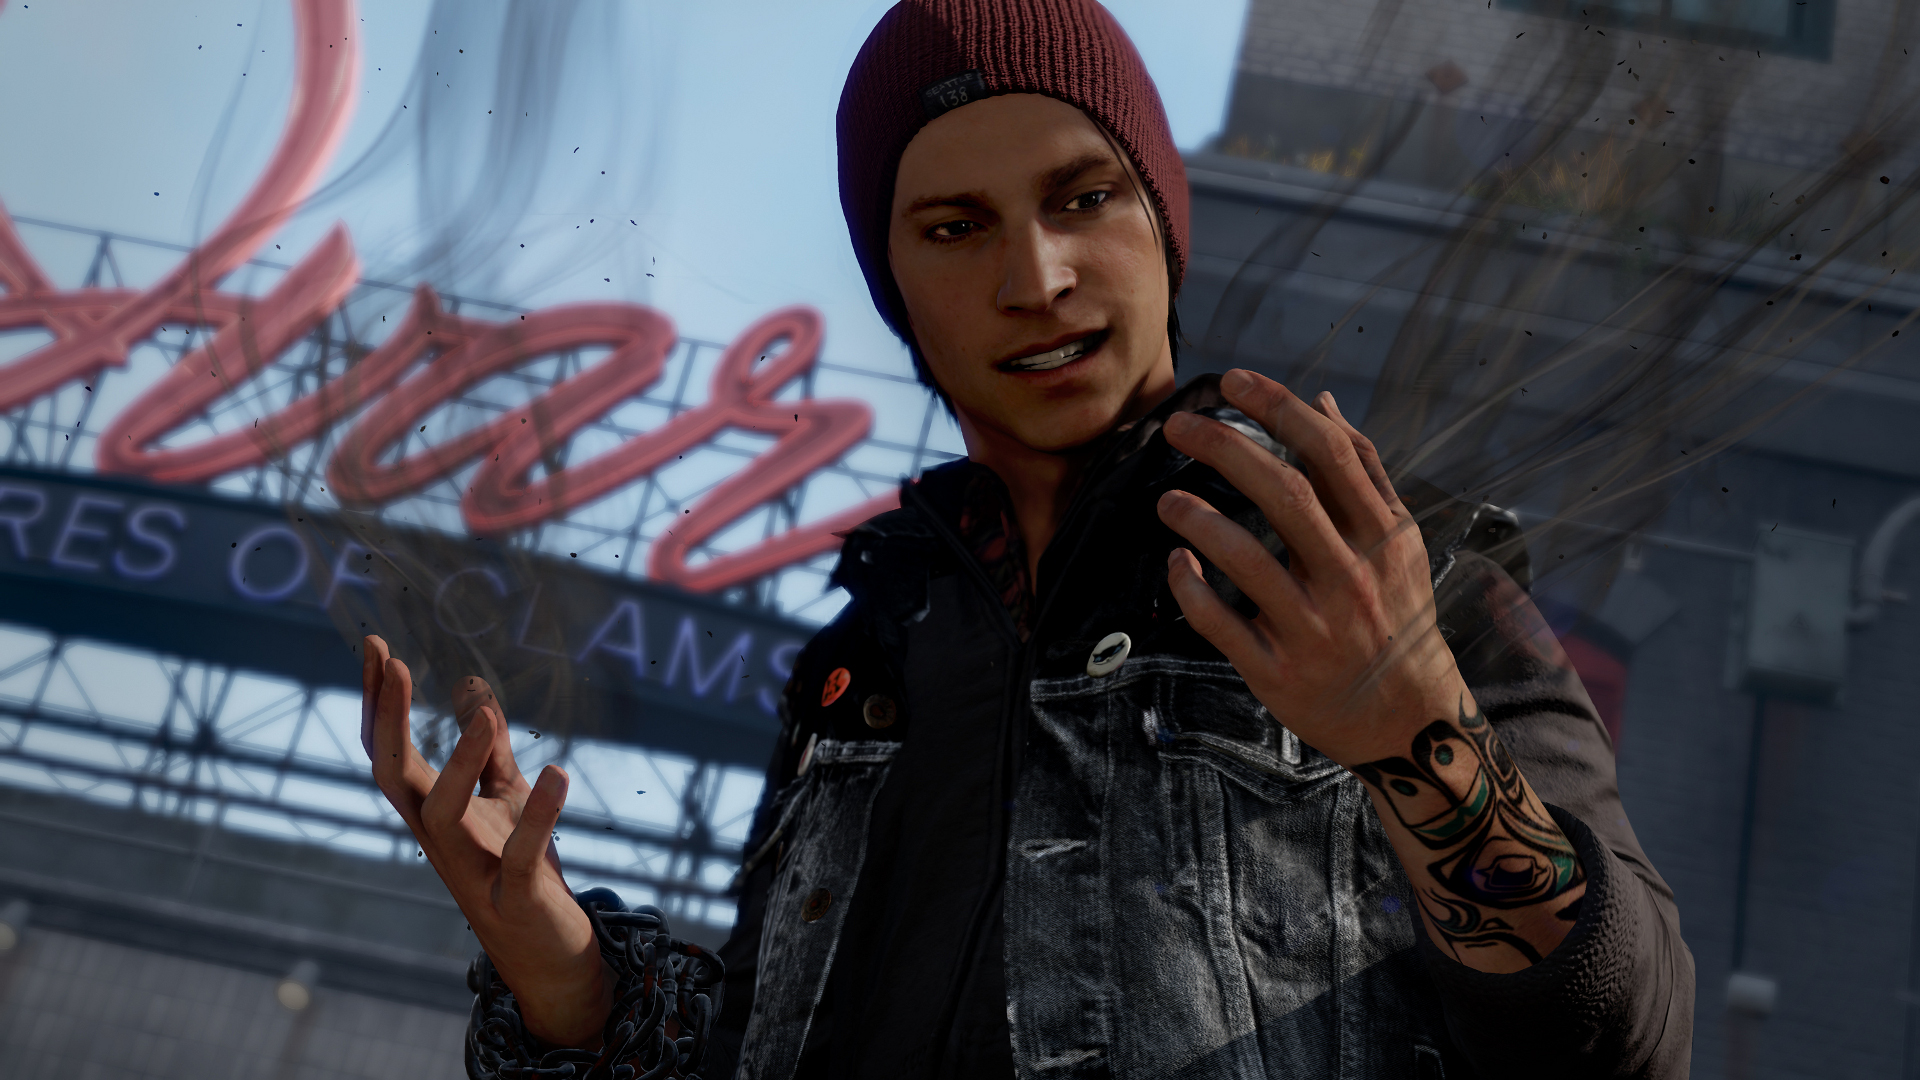 PS4 Sales Skyrocket From Release of InFamous: Second Son